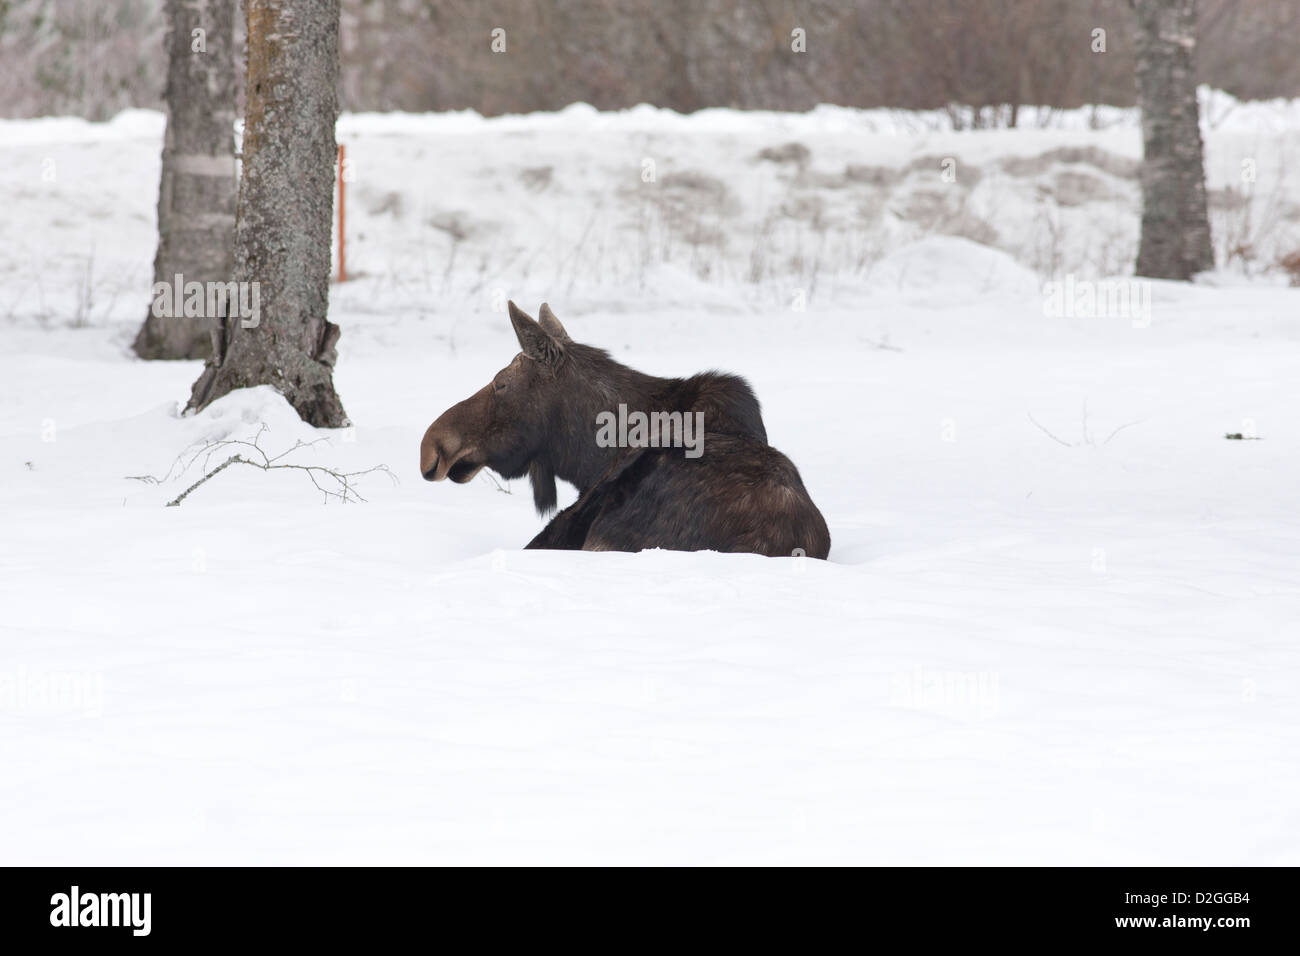 Moose at ease in snow. - Stock Image